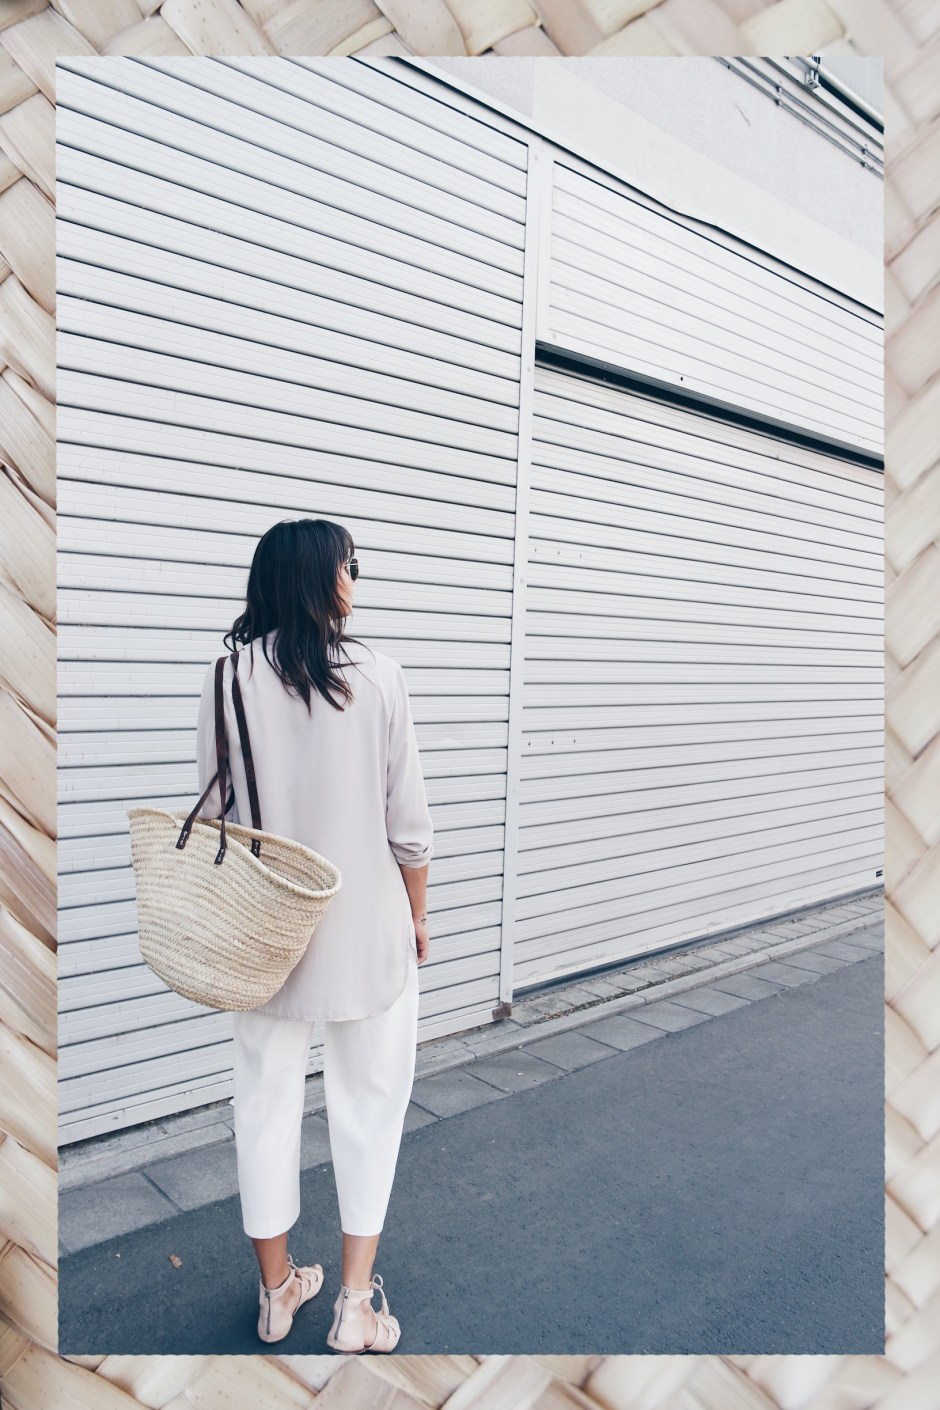 Straw Bag Strohtasche Jacqueline Isabelle Mainz Outfit